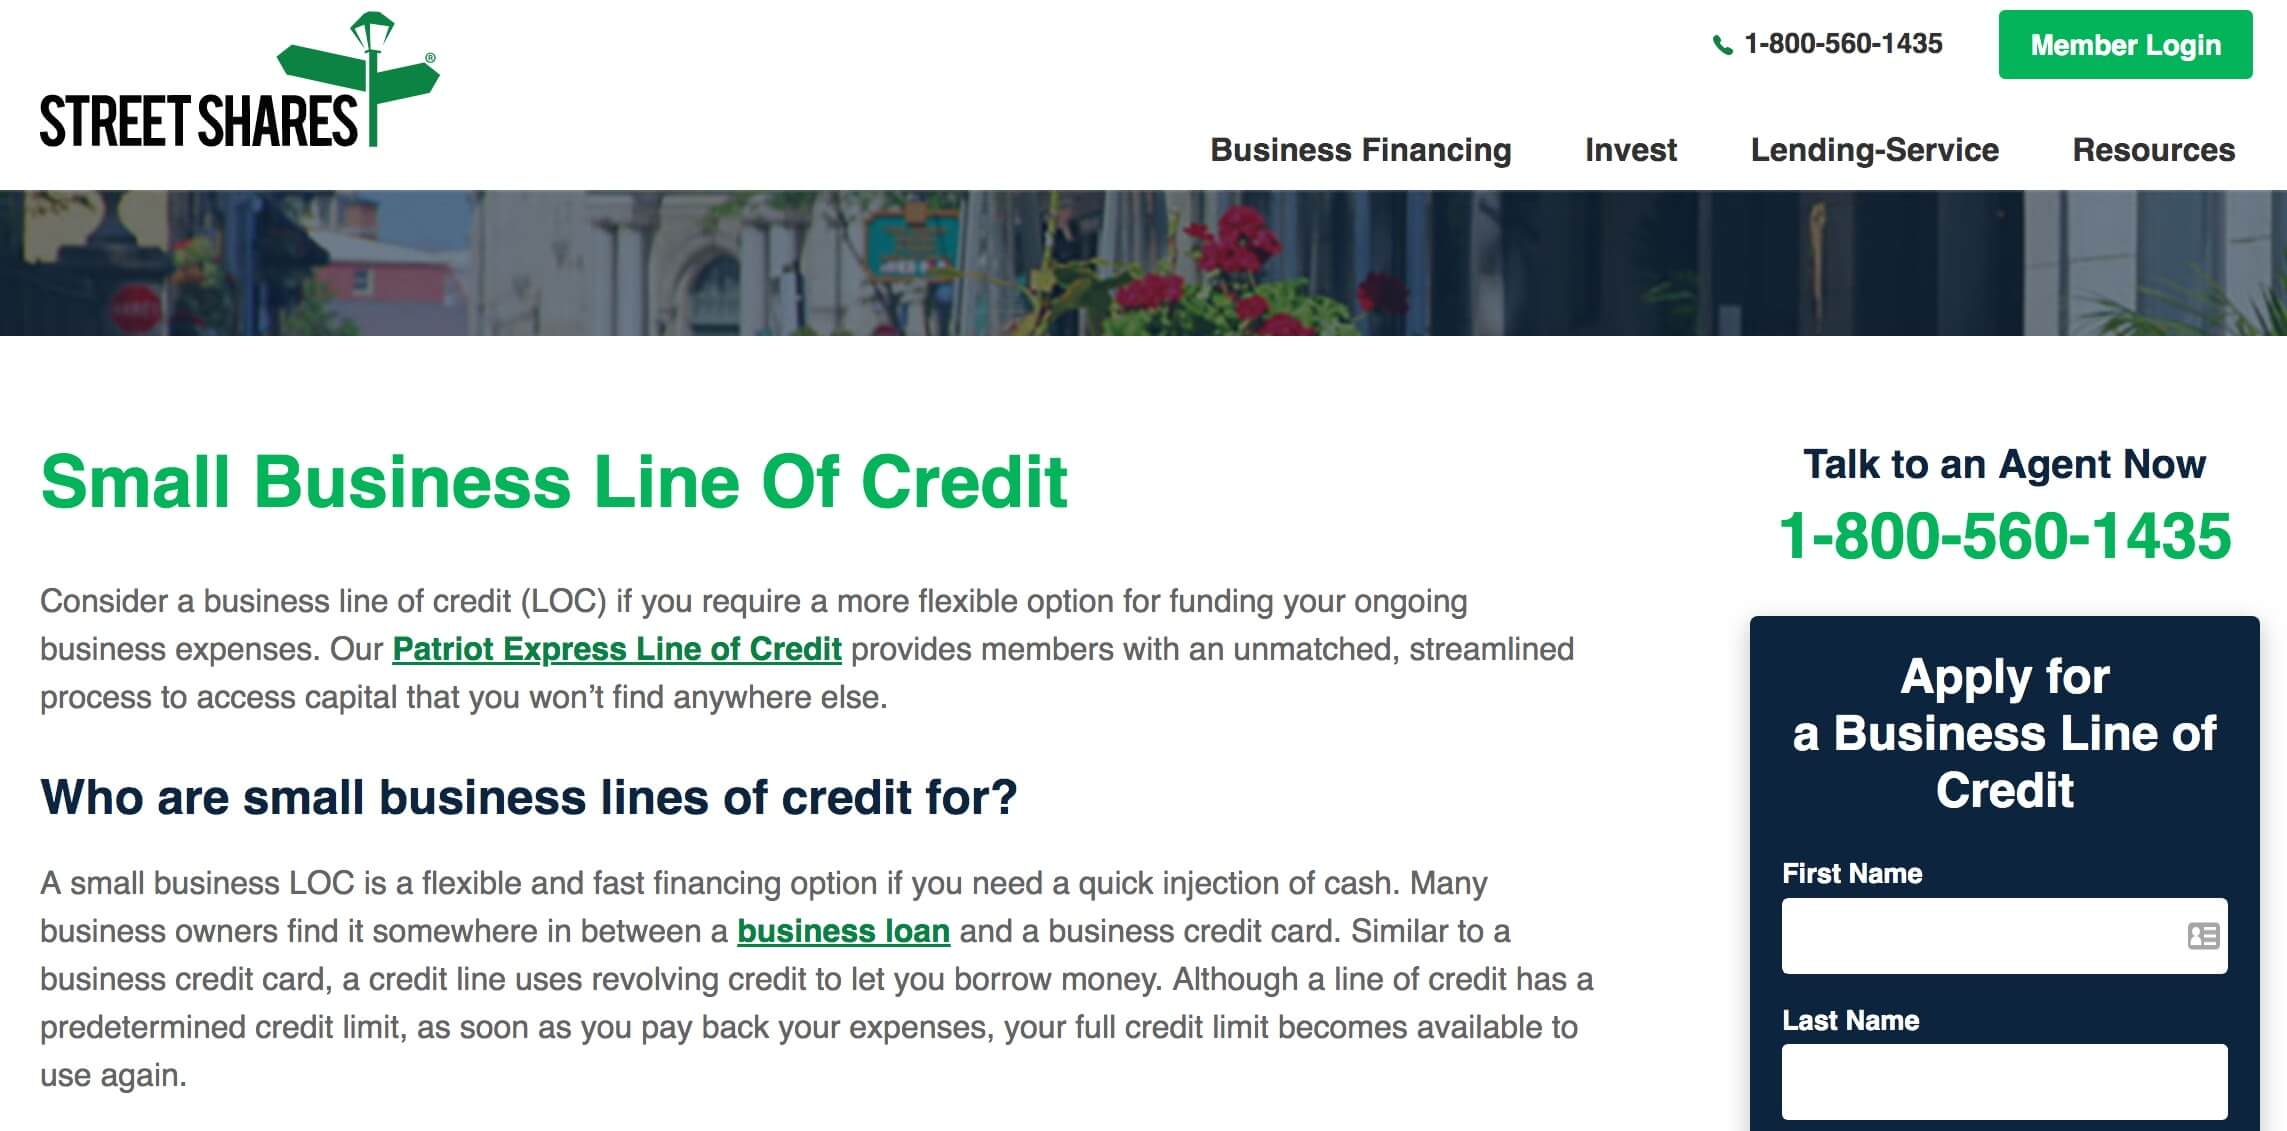 StreetShares business line of credit